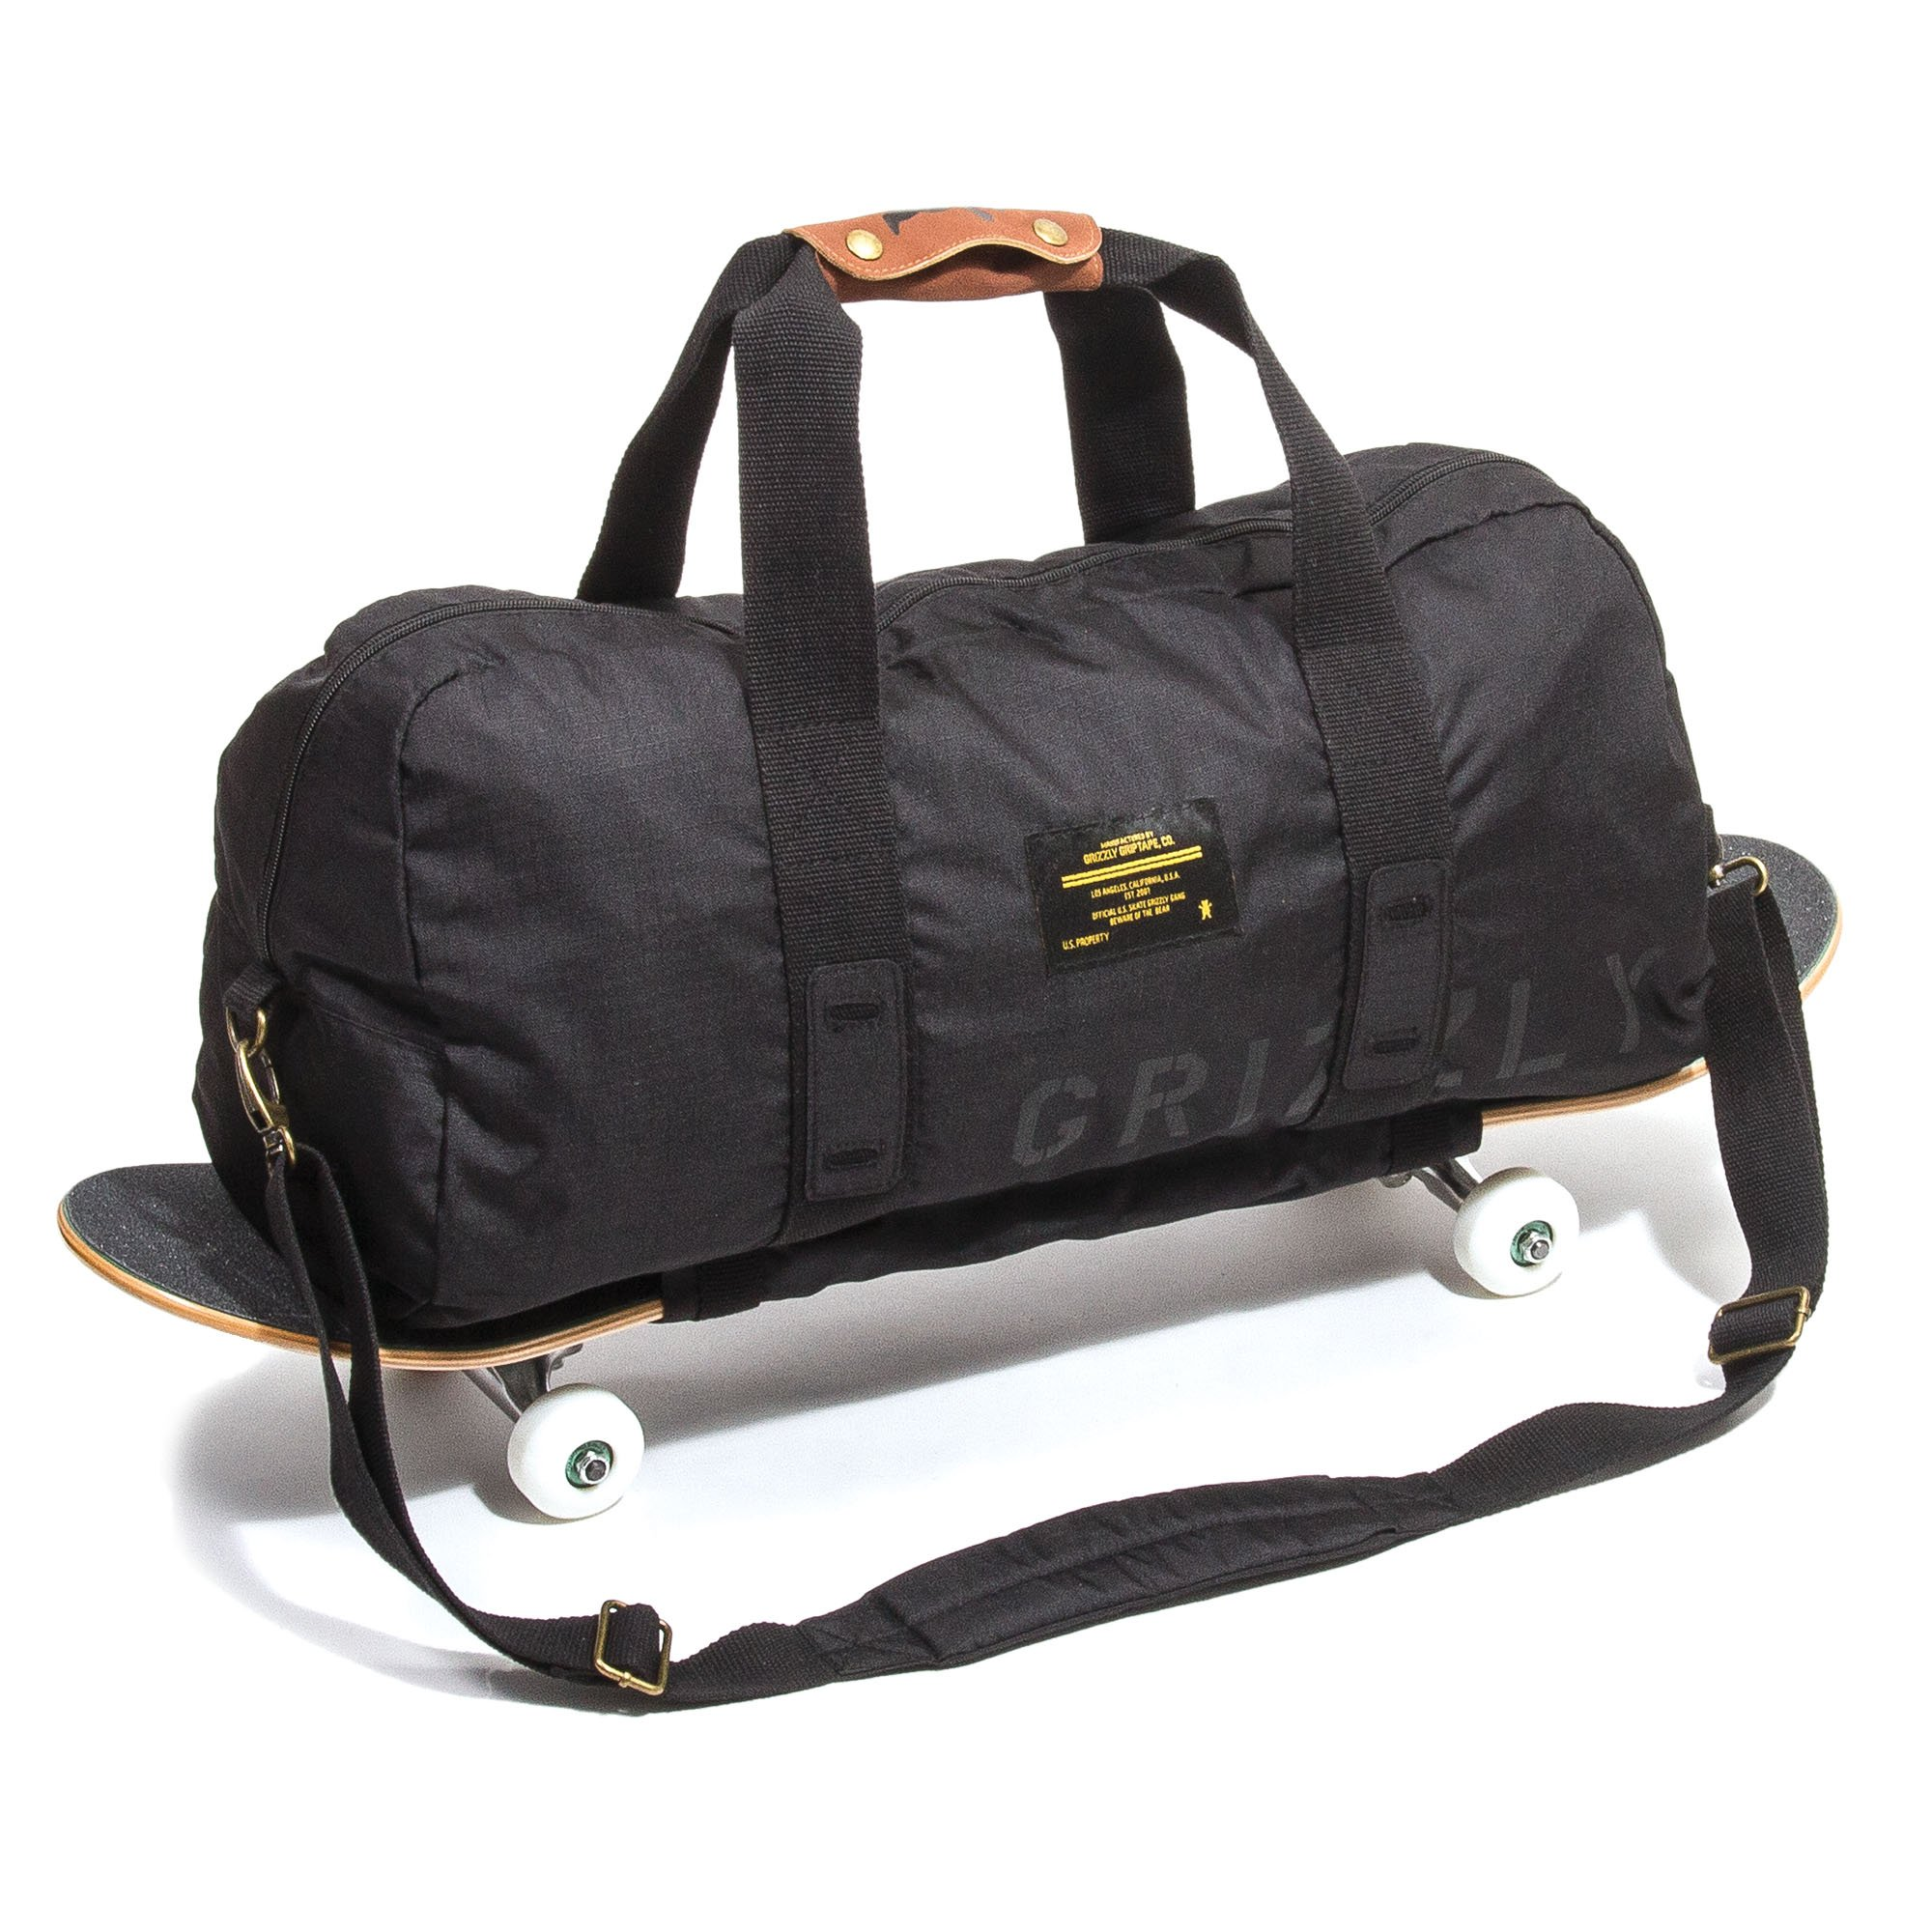 Grizzly Griptape Military Duffle Bag, Black, One Size